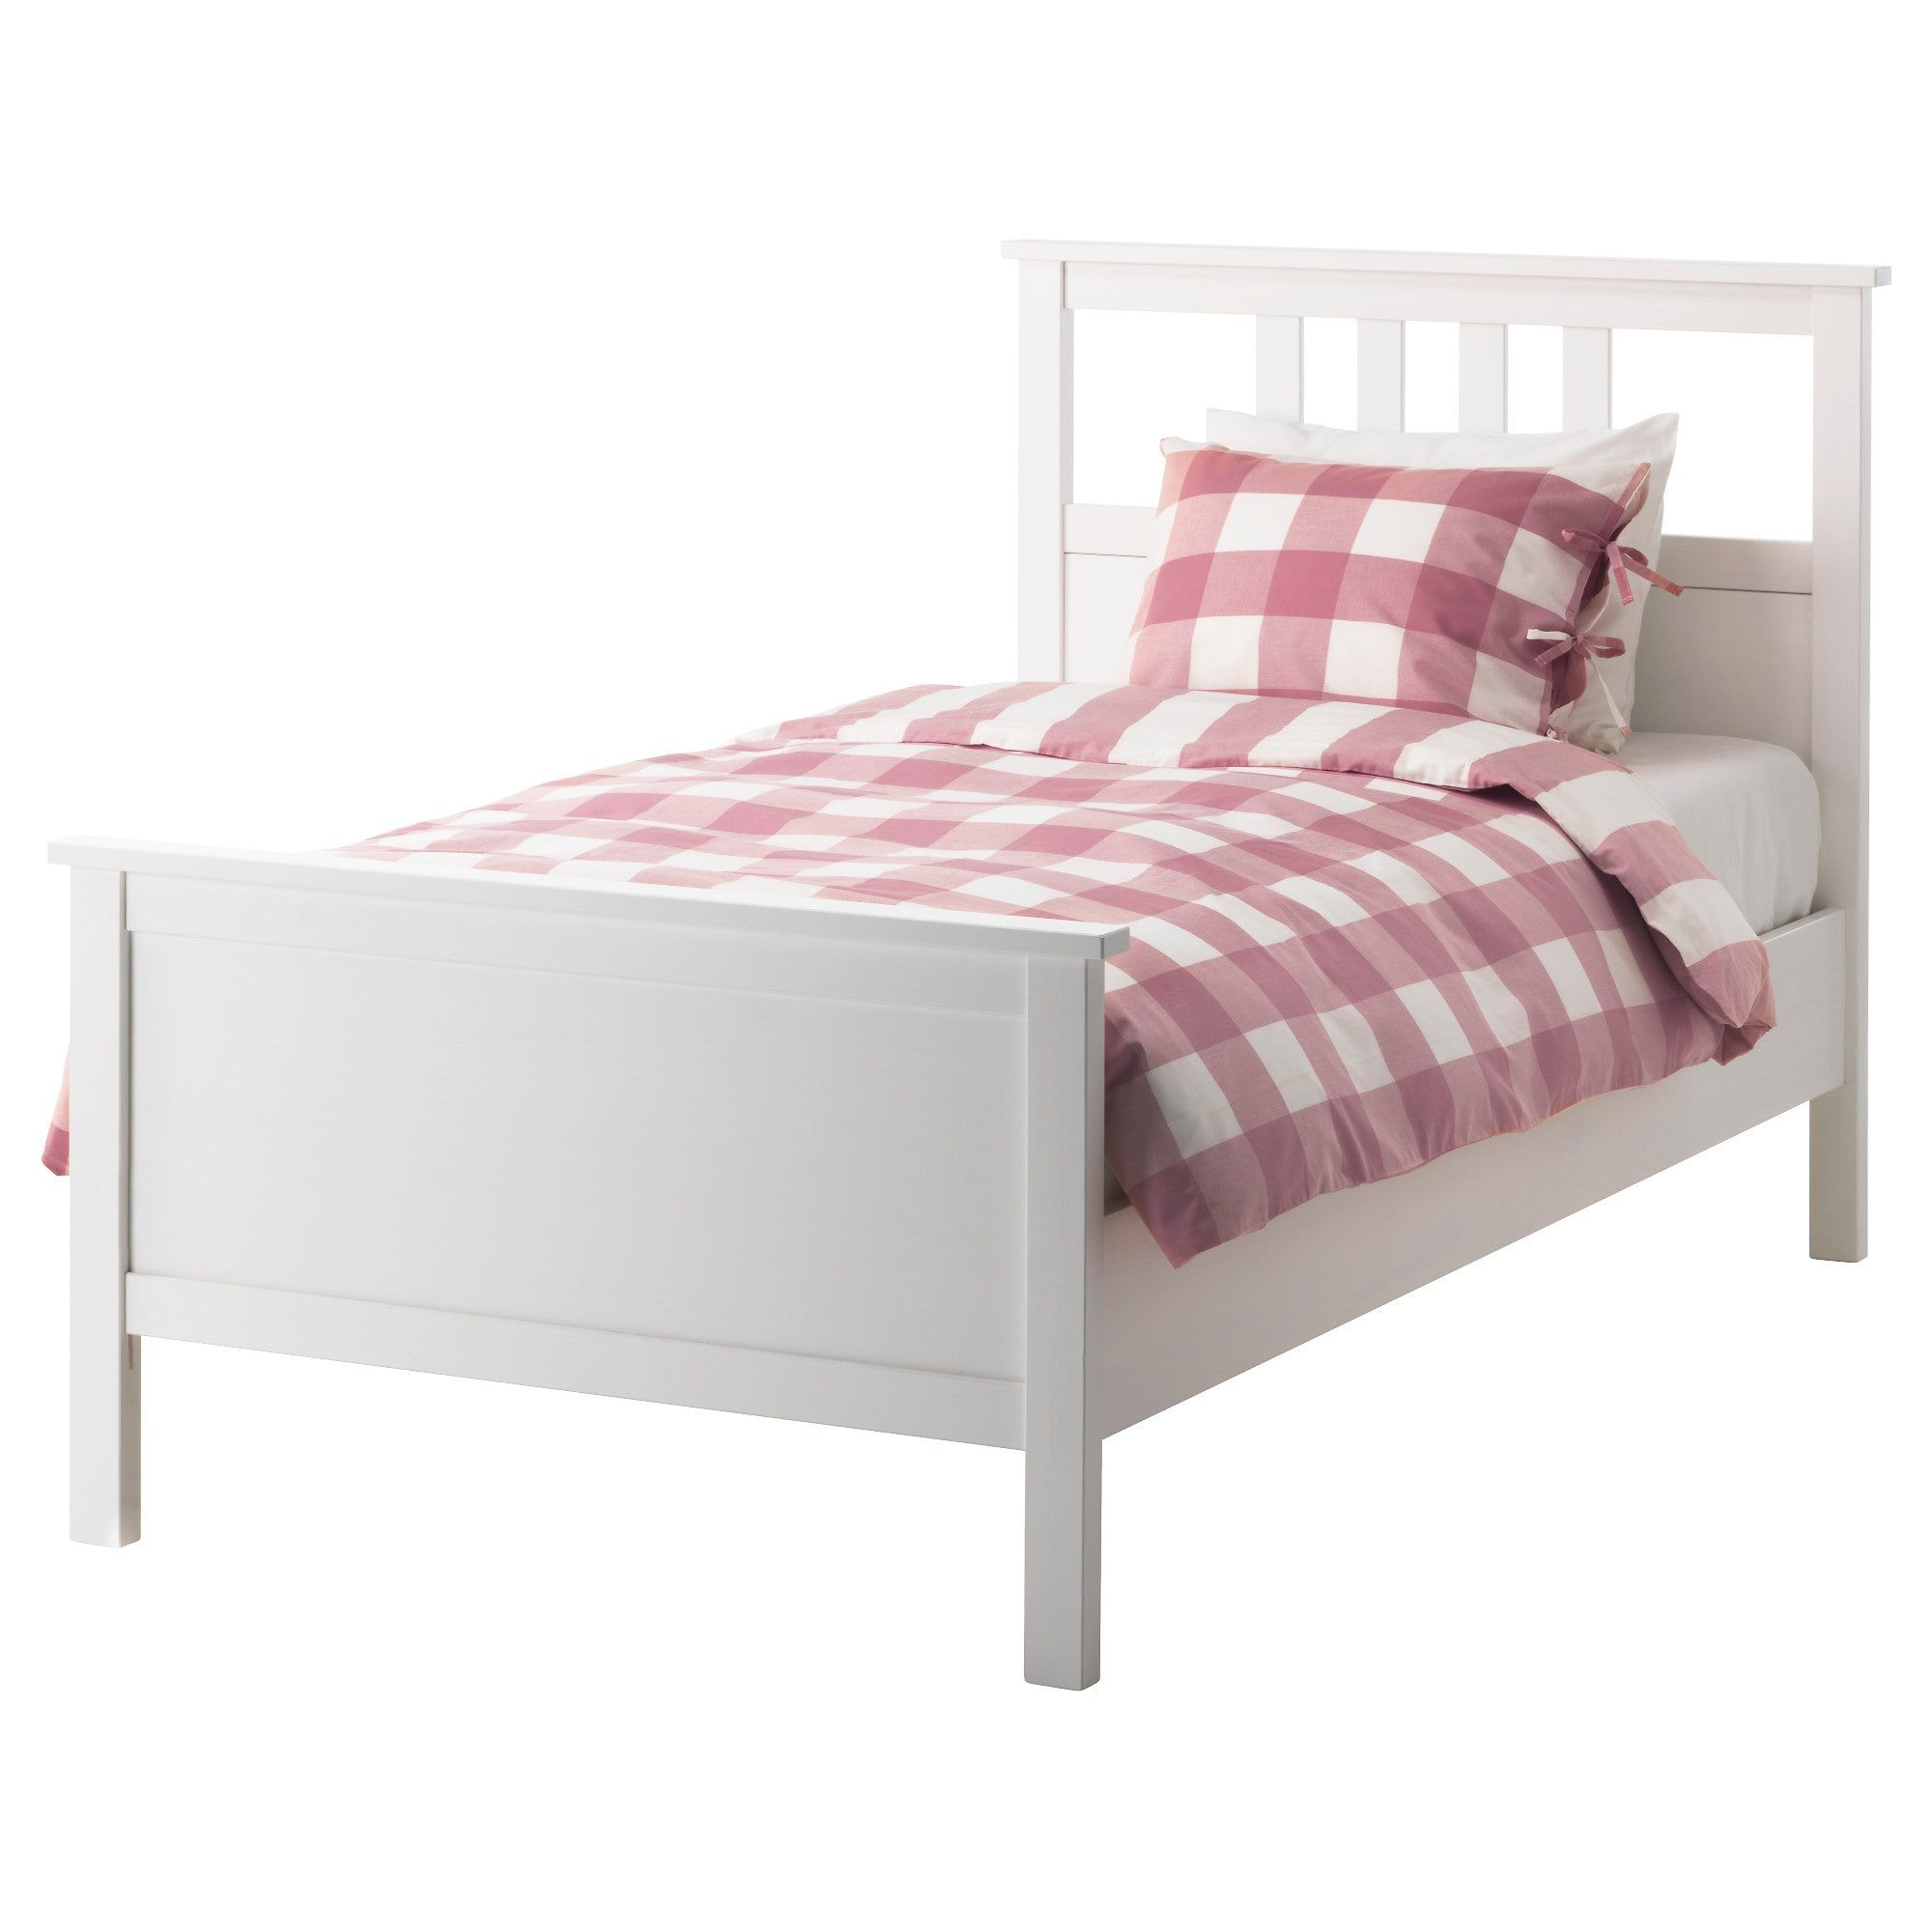 Hemnes Bed Frame White Stain Lonset Twin Ikea In 2020 White